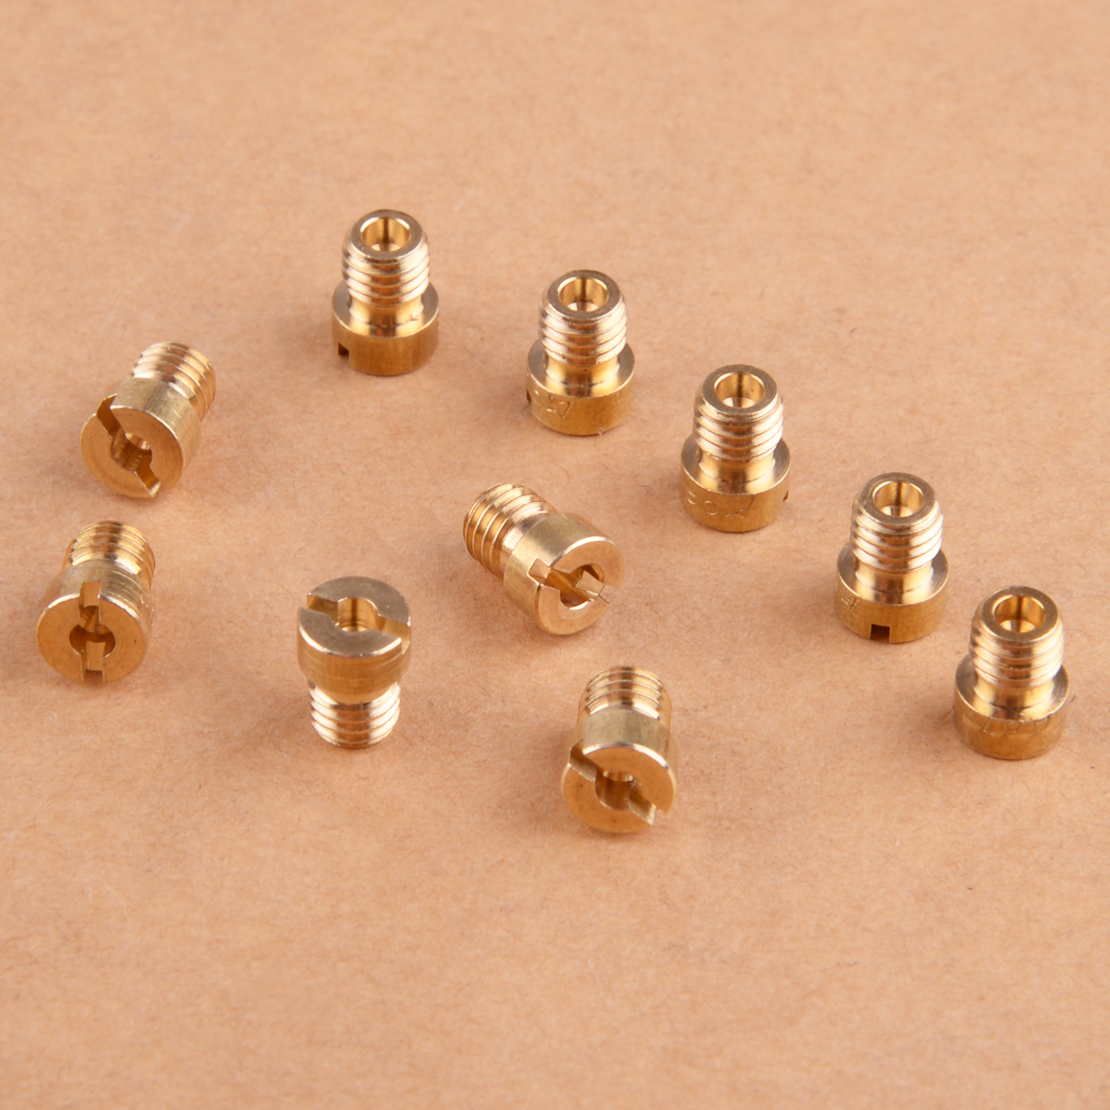 LETAOSK 10pcs Gold Main Jets Nozzle Set 5mm Thread 75-98 Fit For Dellorto Carburetor